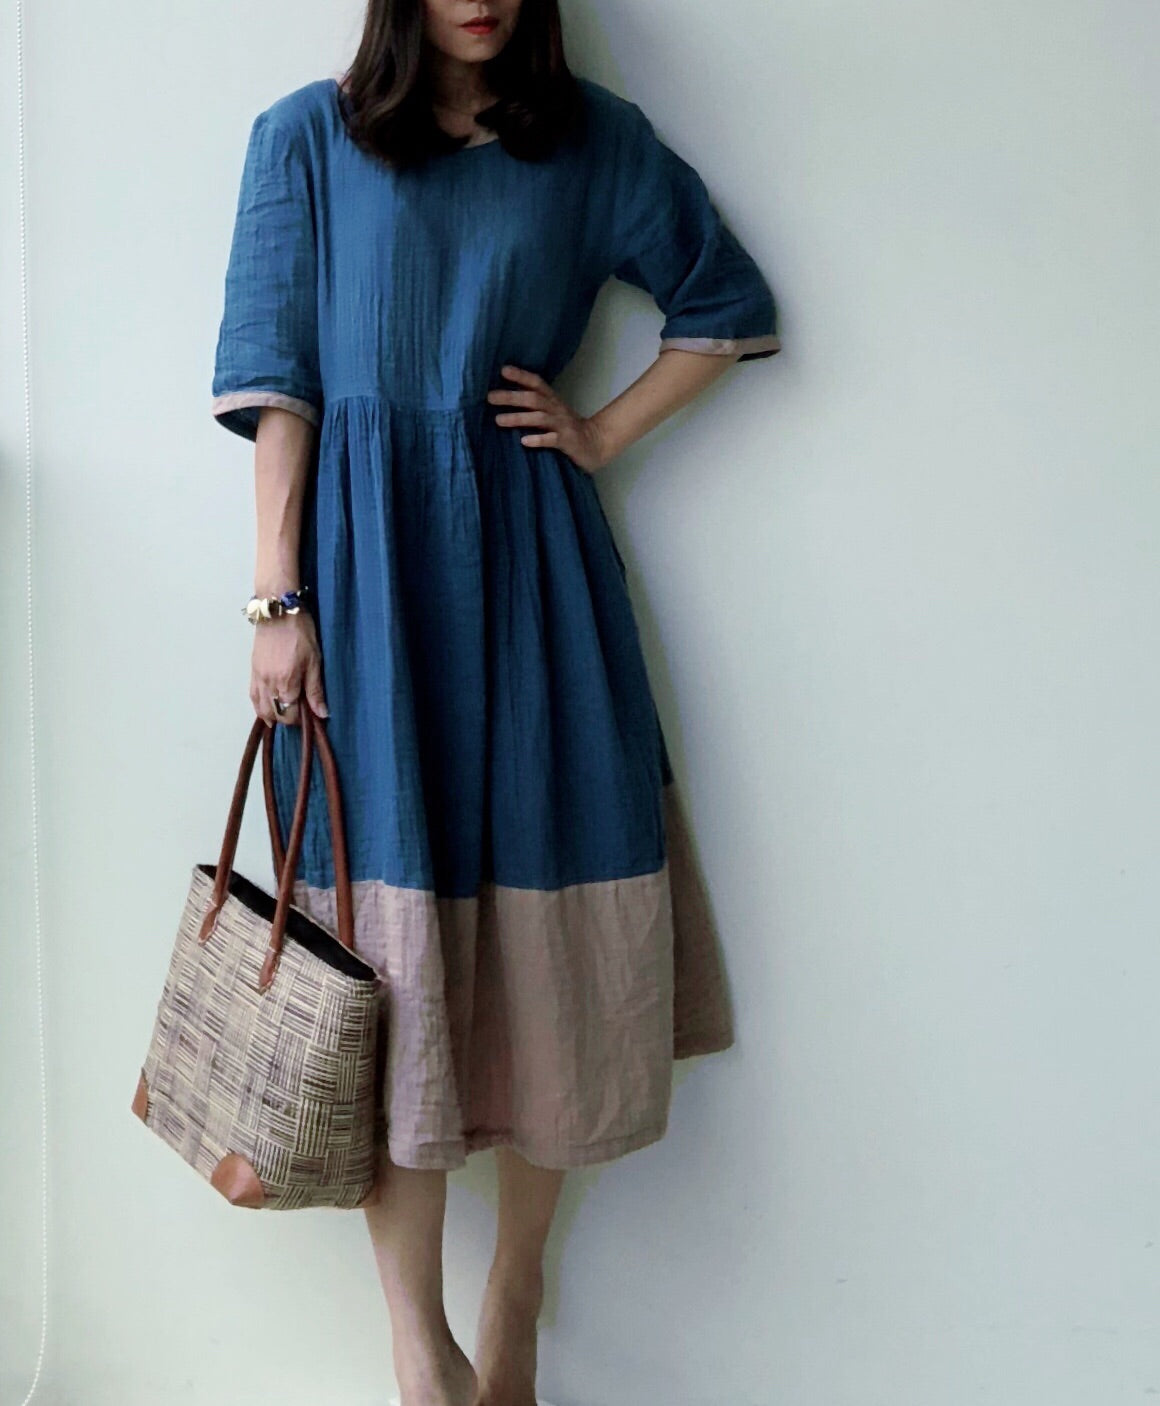 Renee Indigo Dyed Two Toned Dress (Free Size)